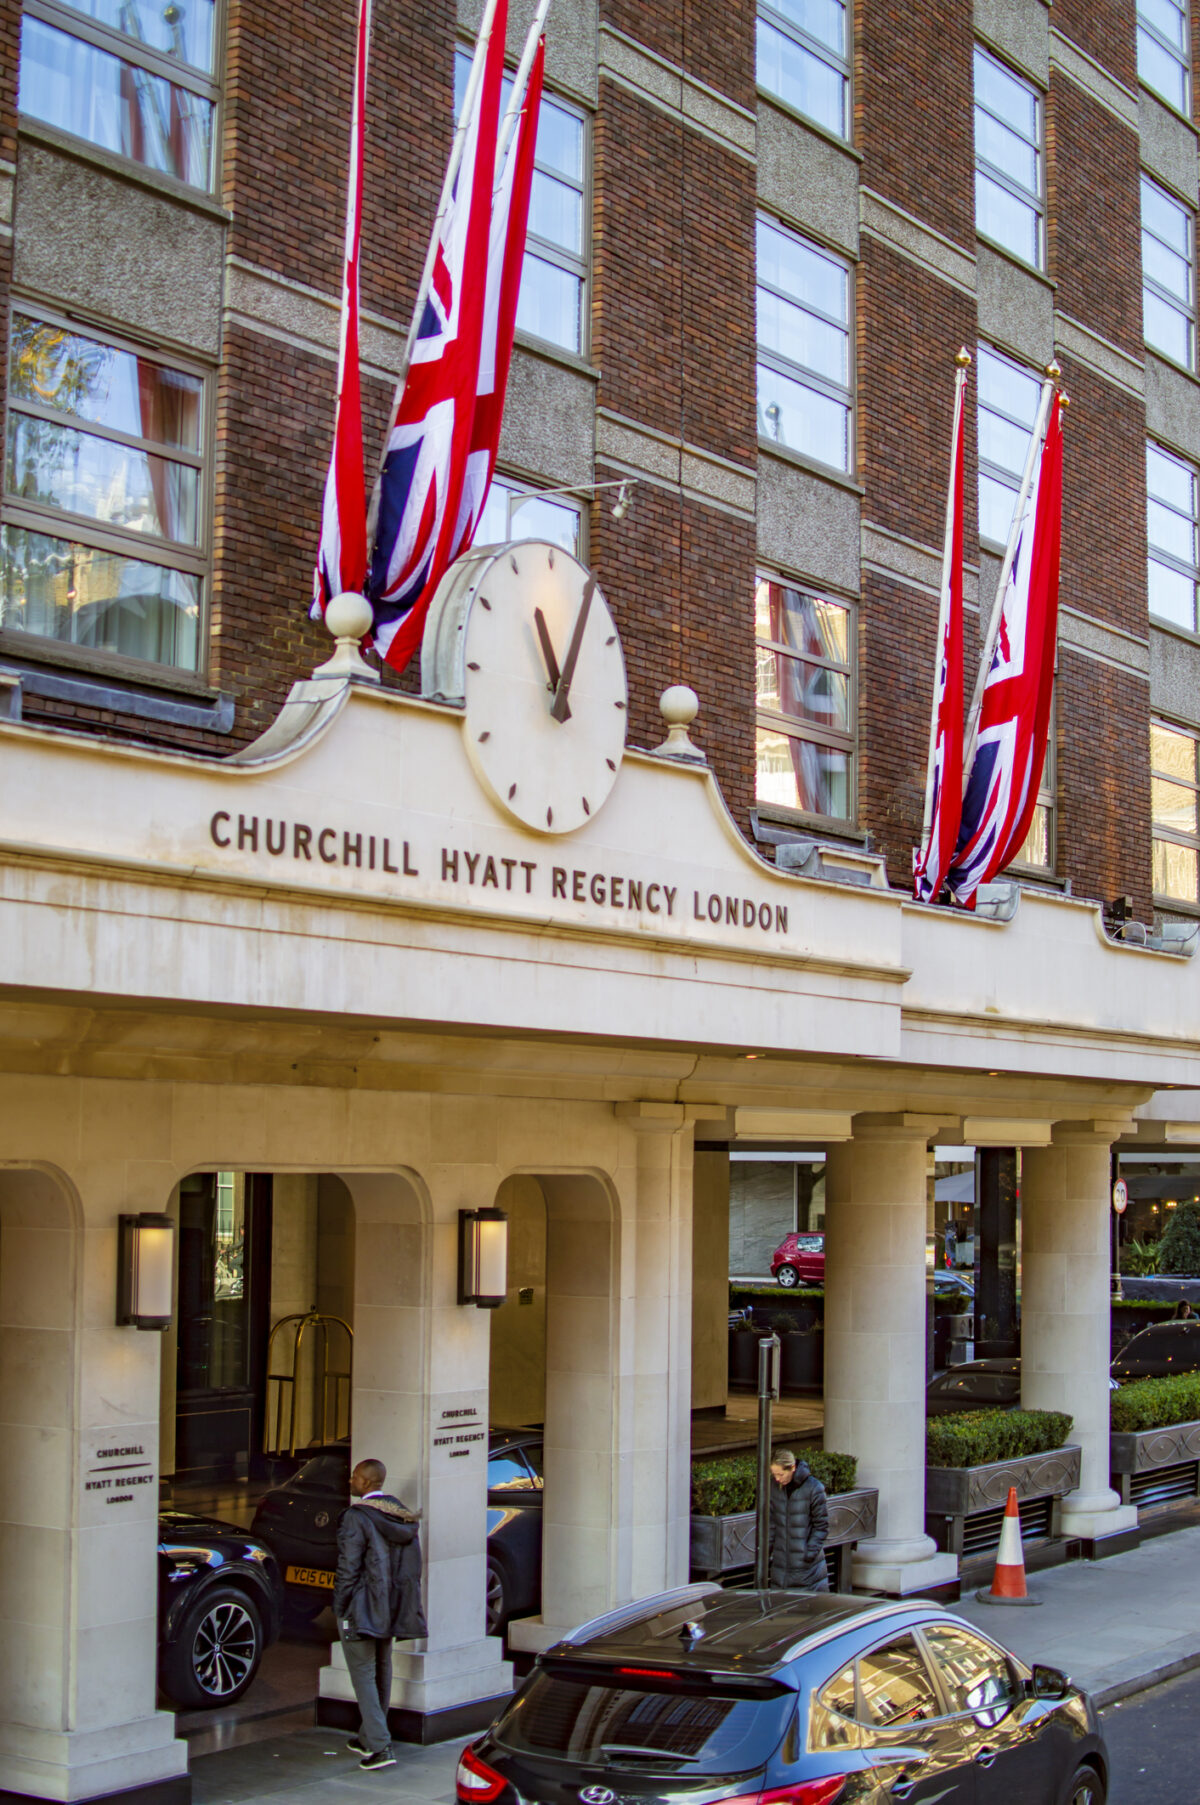 Churchil Hyatt Regency hotel in london with its front and large clock